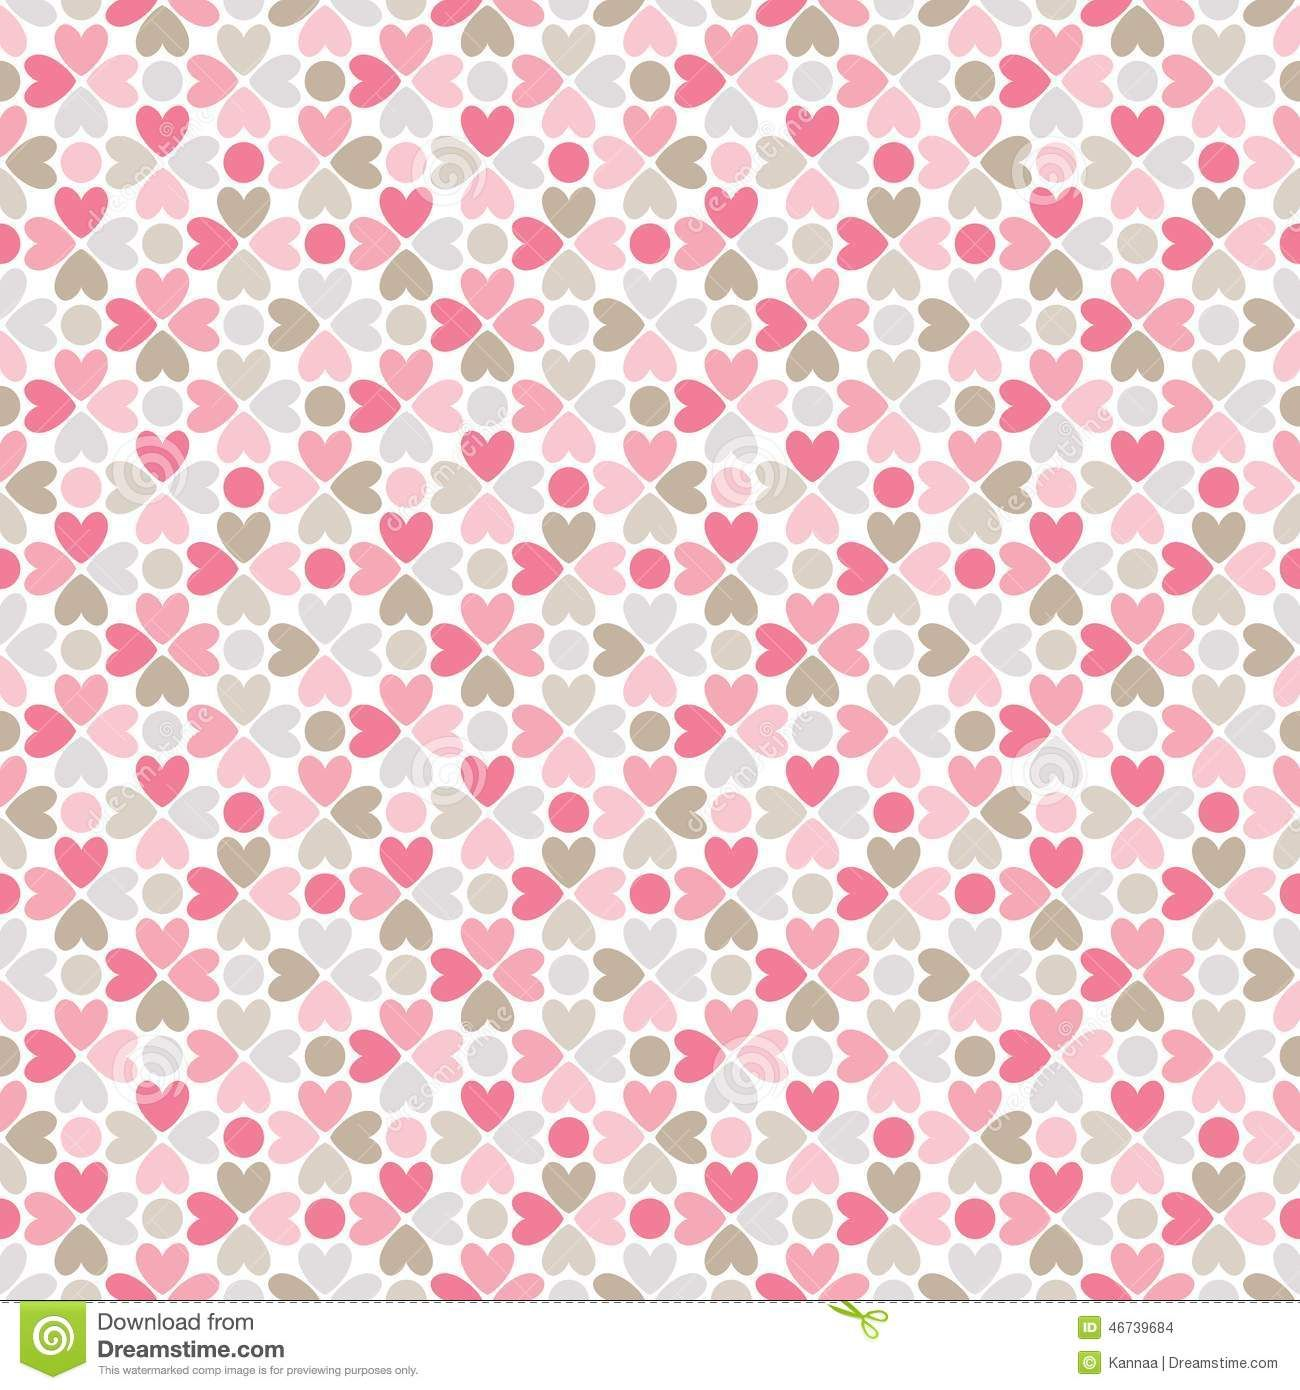 Papel scrap para imprimir rosa buscar con google for Papel decorativo infantil